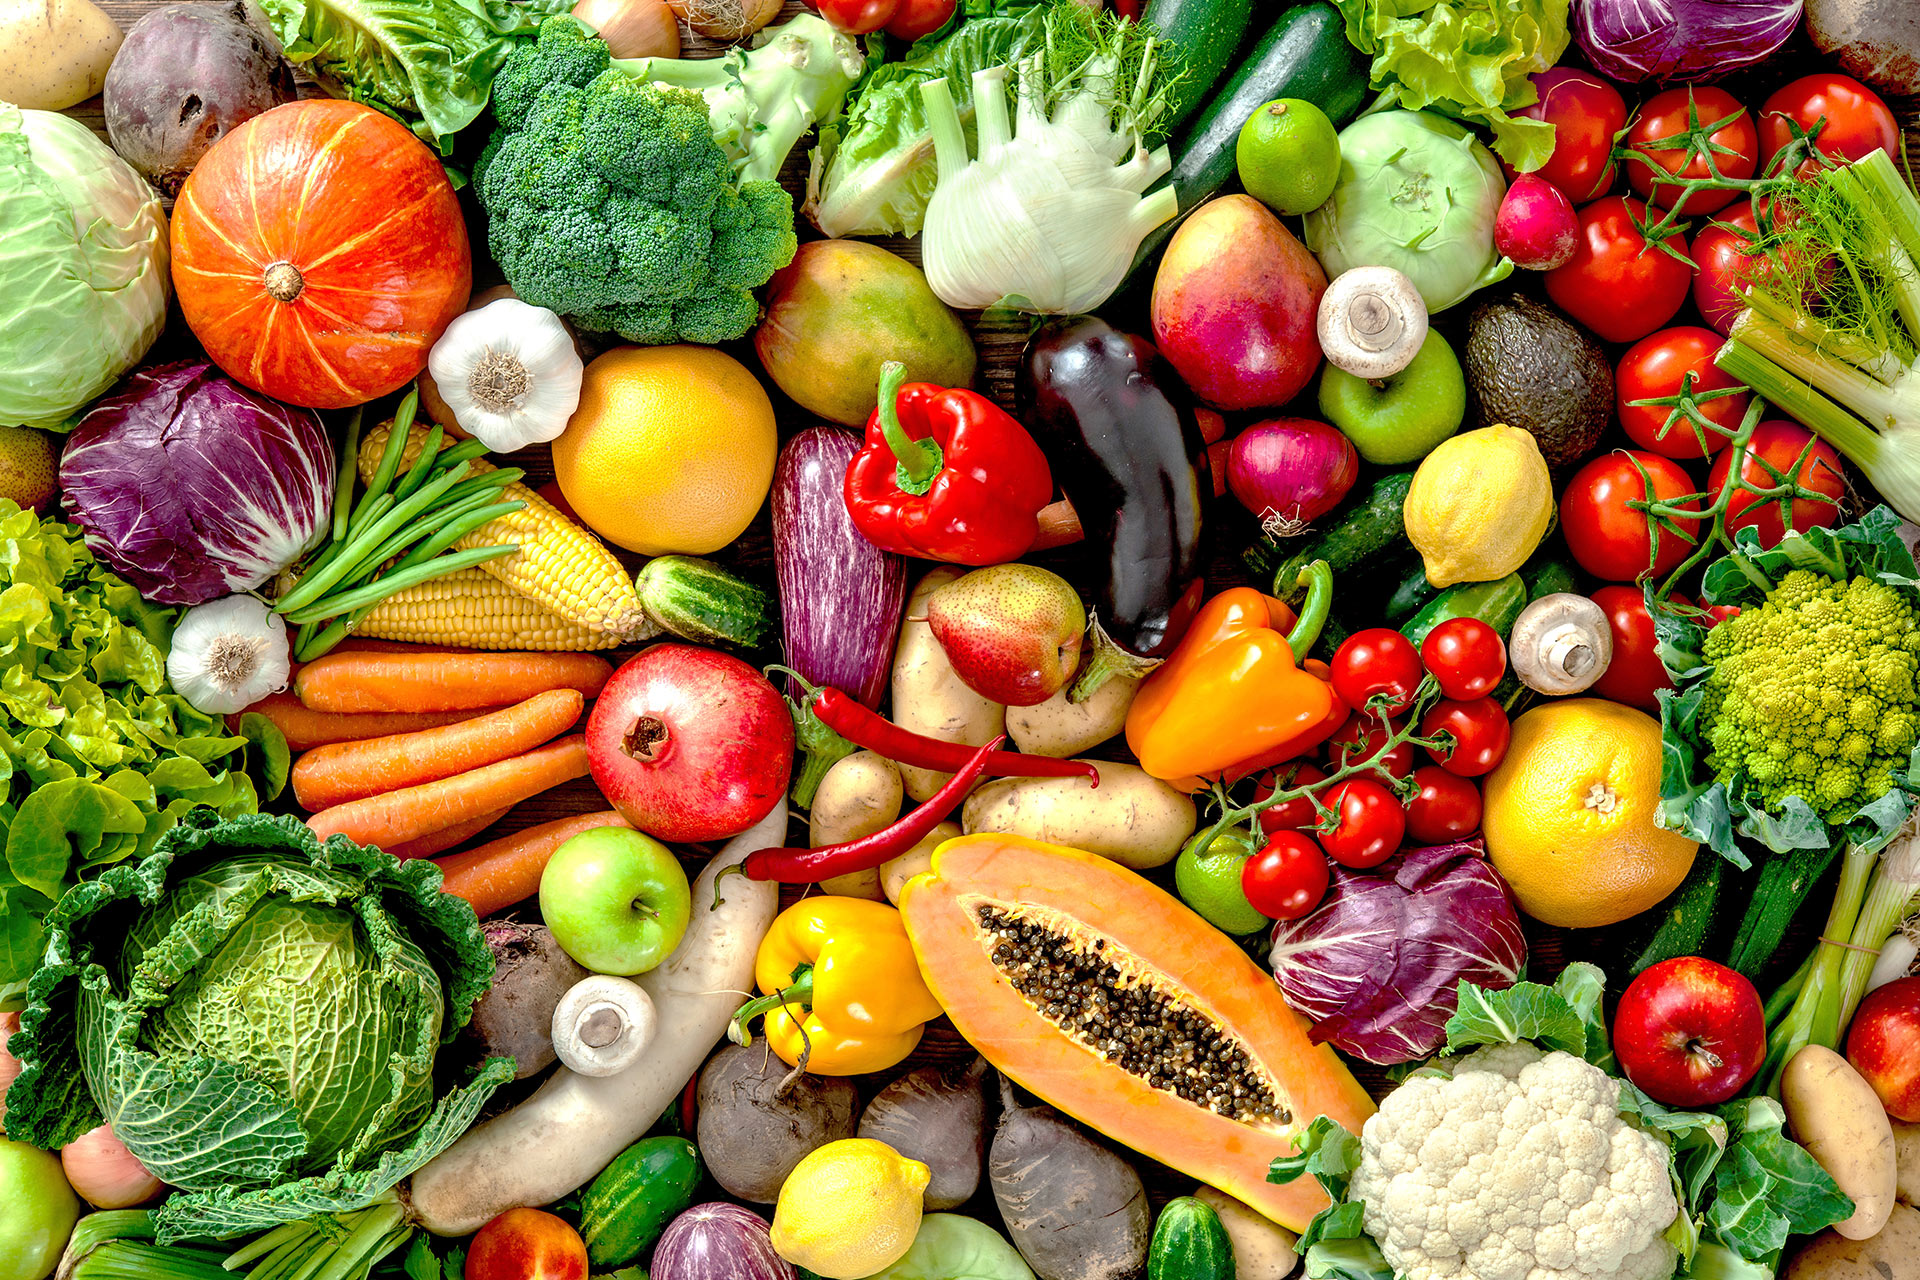 10 Tips on How to Have a Balance & Healthy Vegan Diet